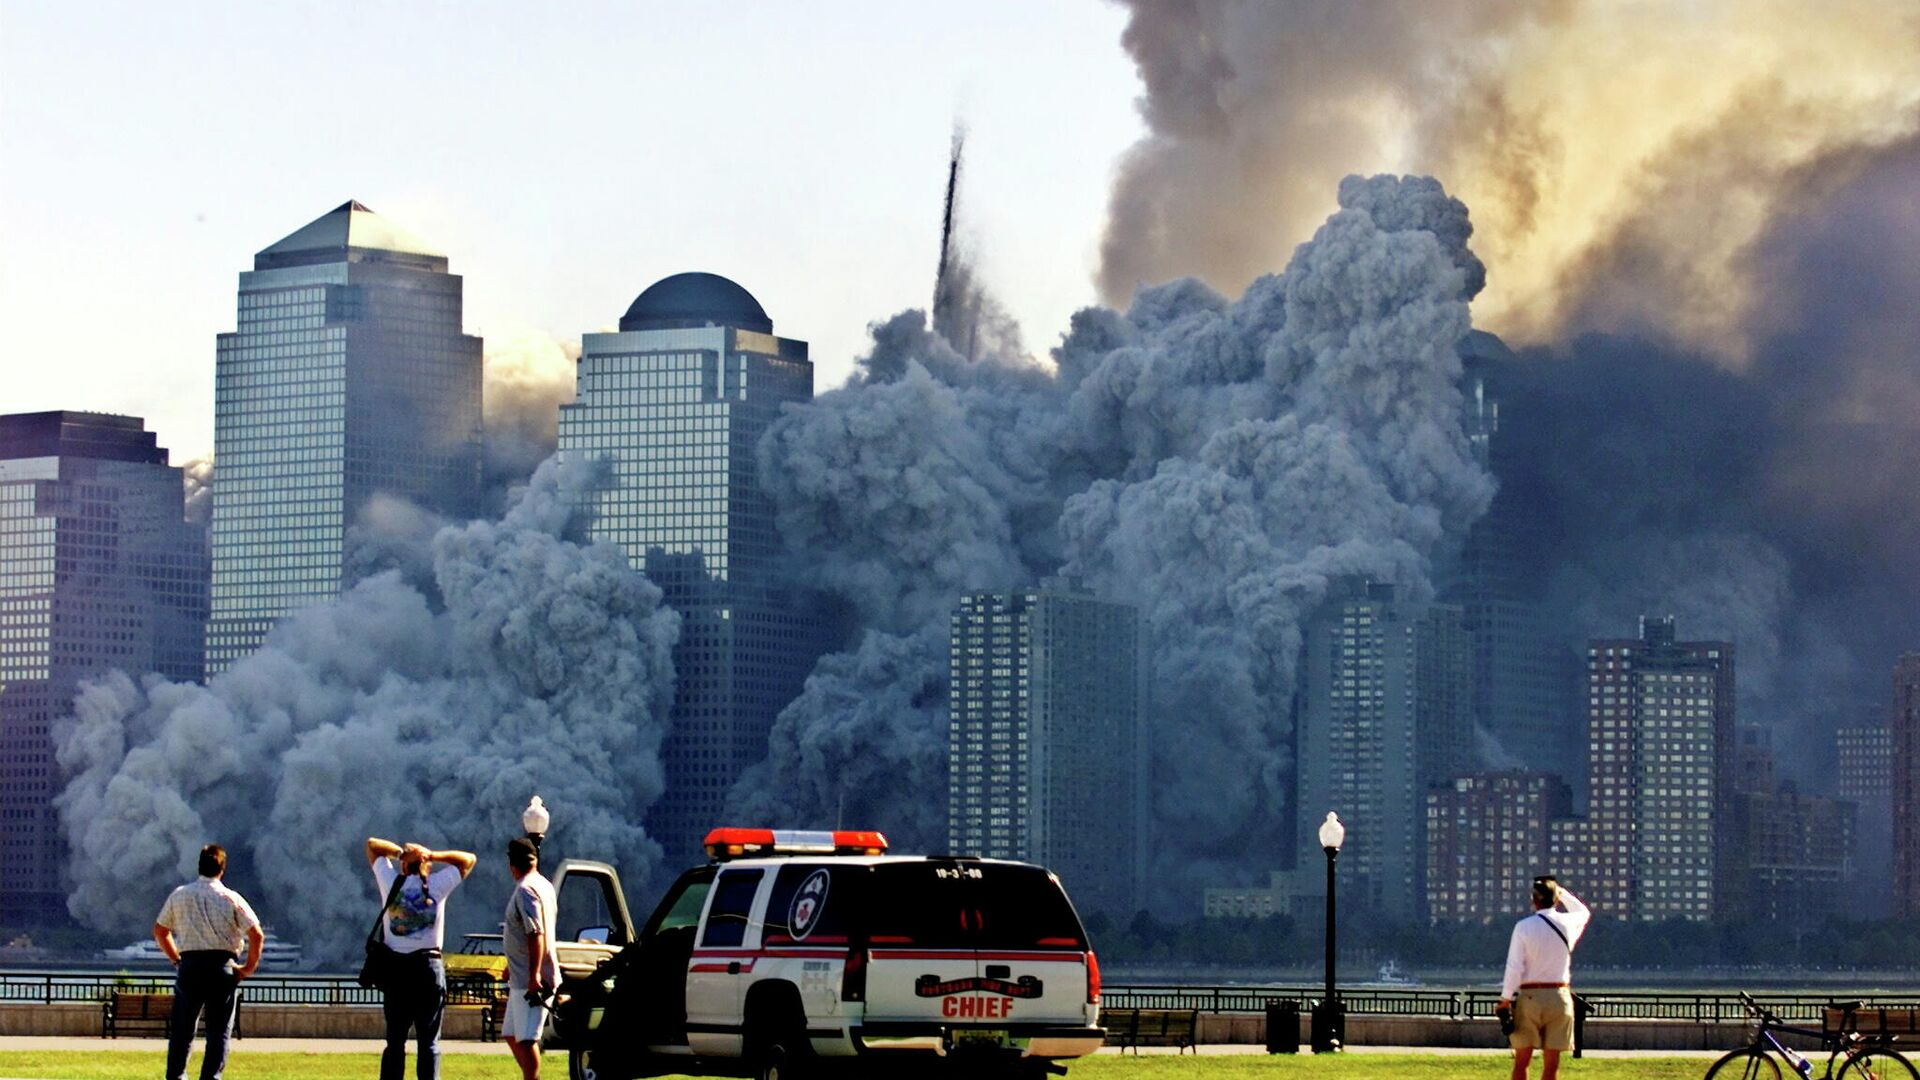 FILE PHOTO: The remaining tower of New York's World Trade Center, Tower 2, dissolves in a cloud of dust and debris about half an hour after the first twin tower collapsed, as seen from Jersey City, New Jersey, U.S. September 11, 2001.  - Sputnik International, 1920, 11.09.2021